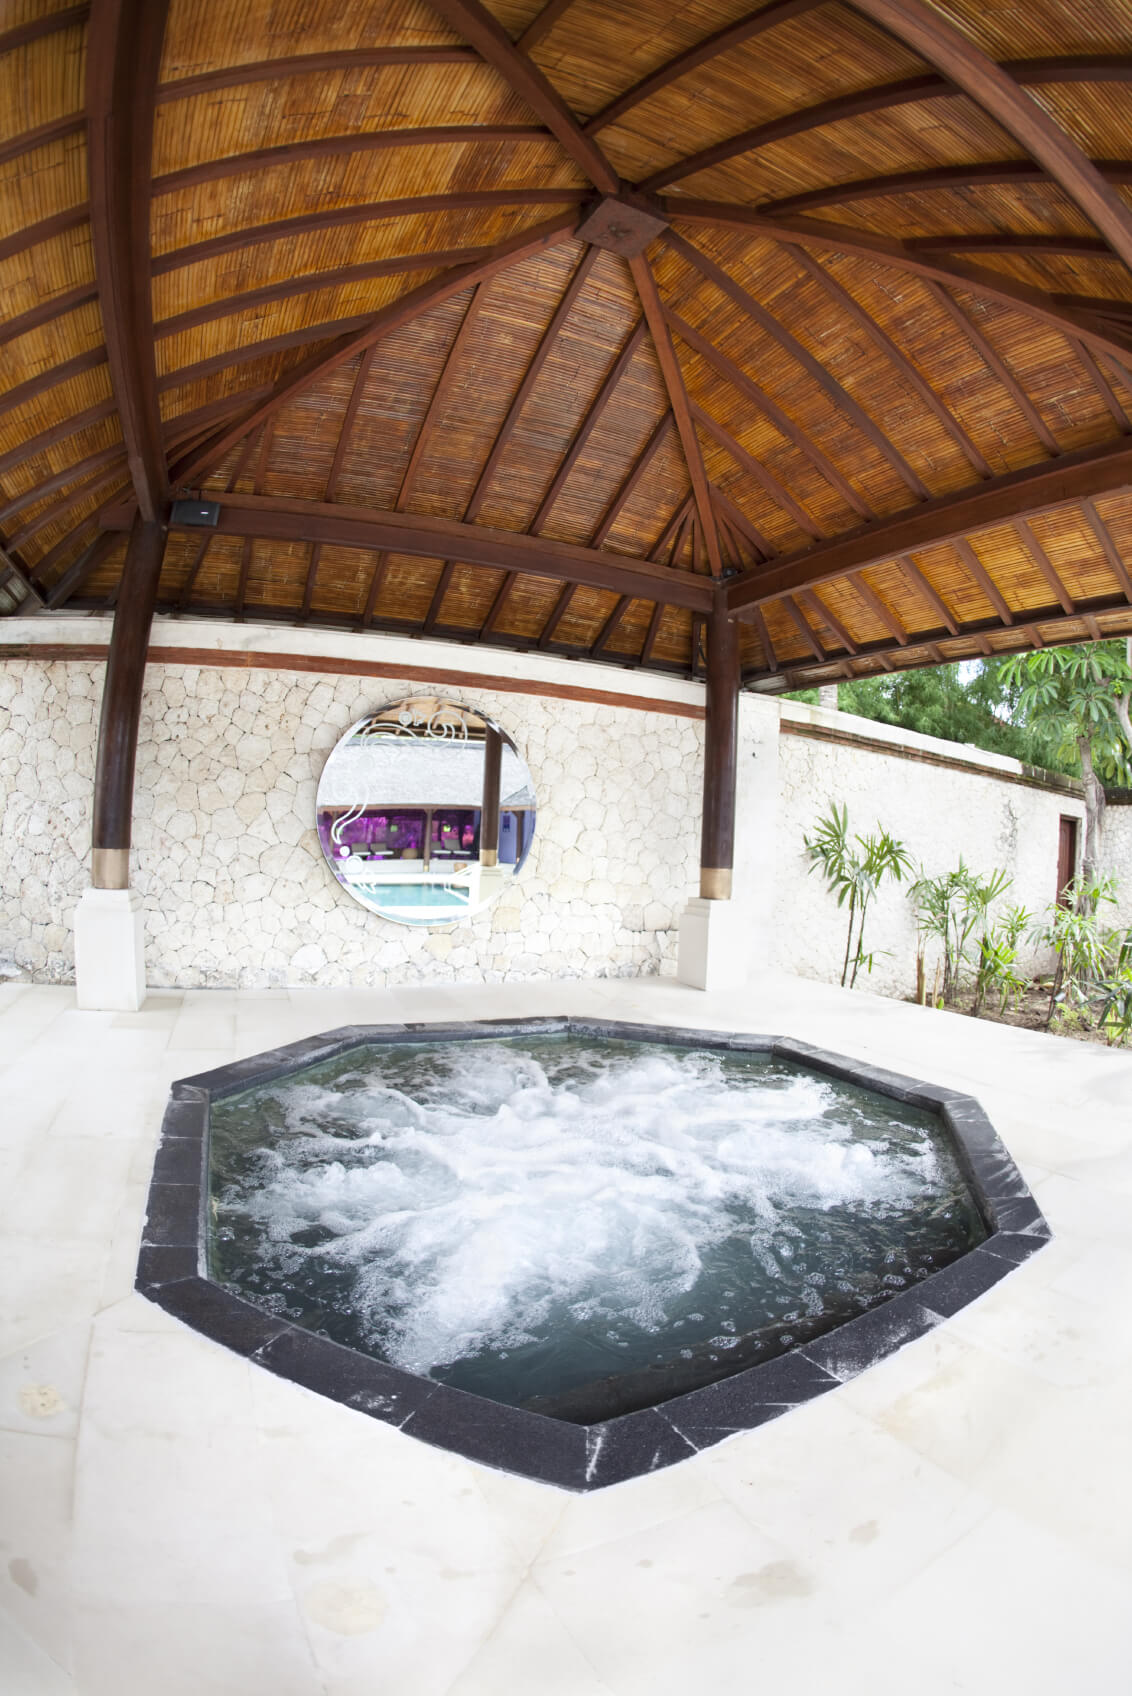 Not all hot tubs are the same shape. While many are rectangular or circular, you can get custom tubs in a great variety of shapes. Here is a luxury hot tub in an octagonal shape.